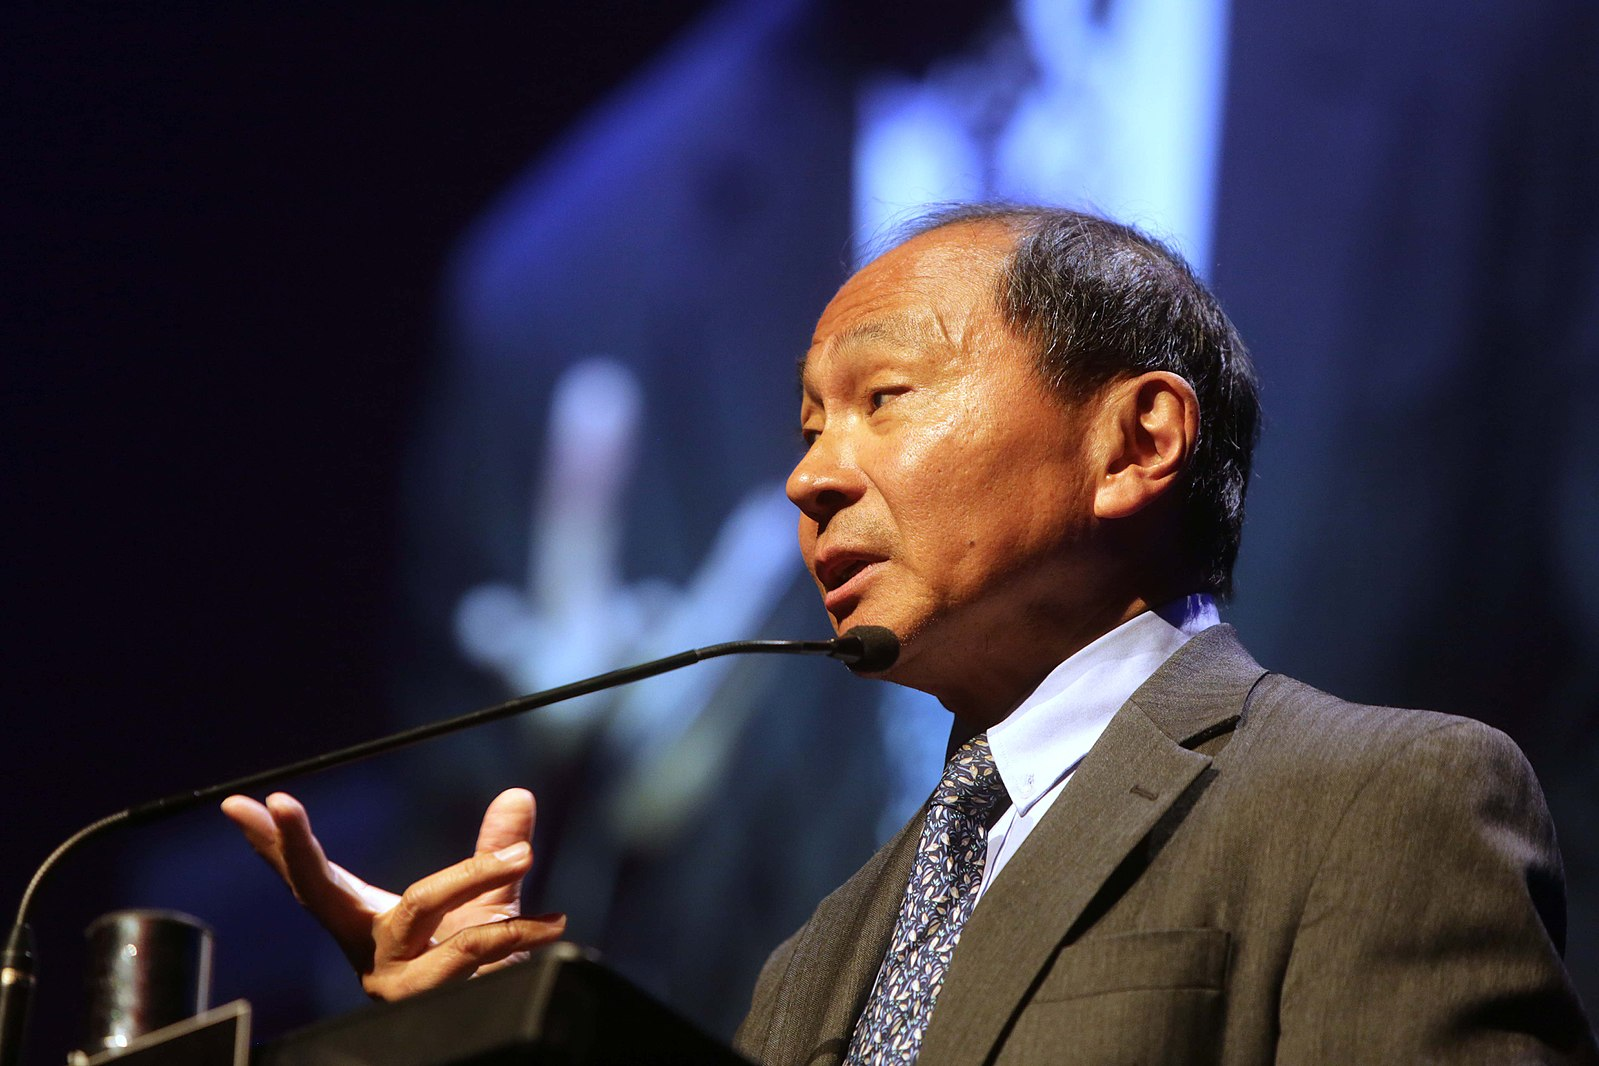 francis fukuyama about liberal democracy In 1989, francis fukuyama made his now-famous pronouncement that because the major alternatives to liberal democracy had exhausted themselves, history as we knew it had reached its end.